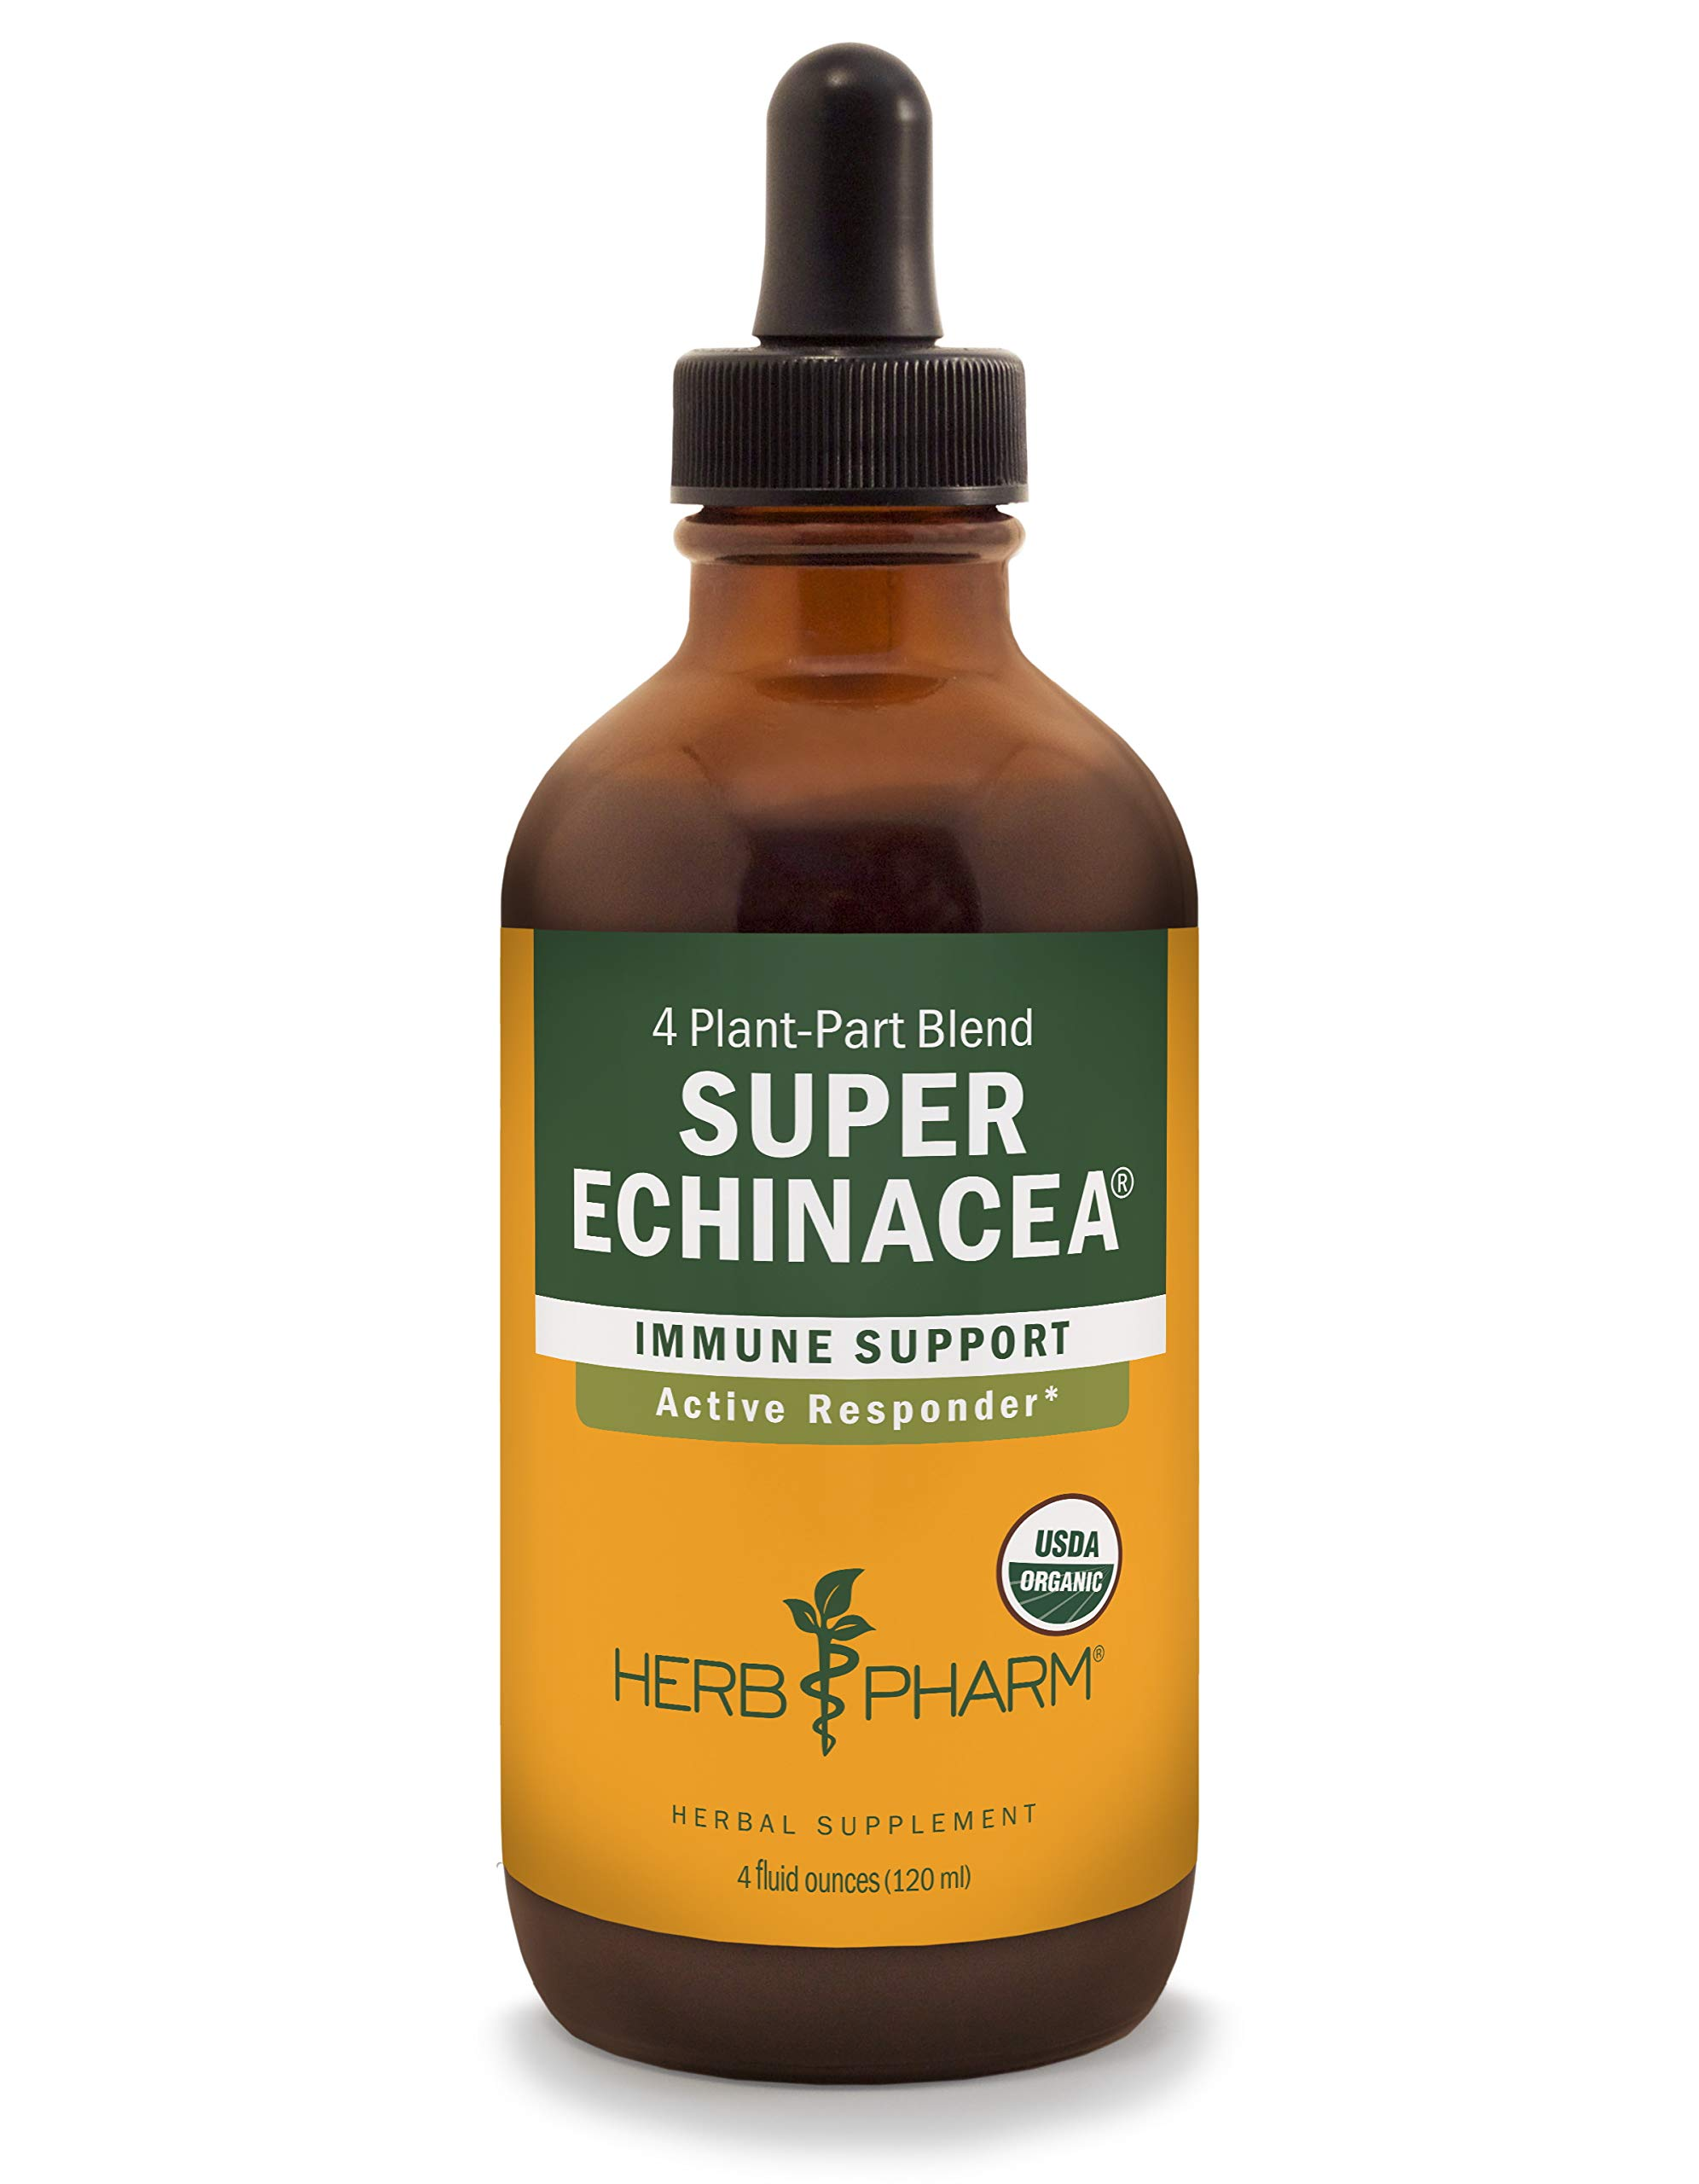 Herb Pharm Certified Organic Super Echinacea Liquid Extract for Active Immune System Support - 4 Ounce by Herb Pharm (Image #1)